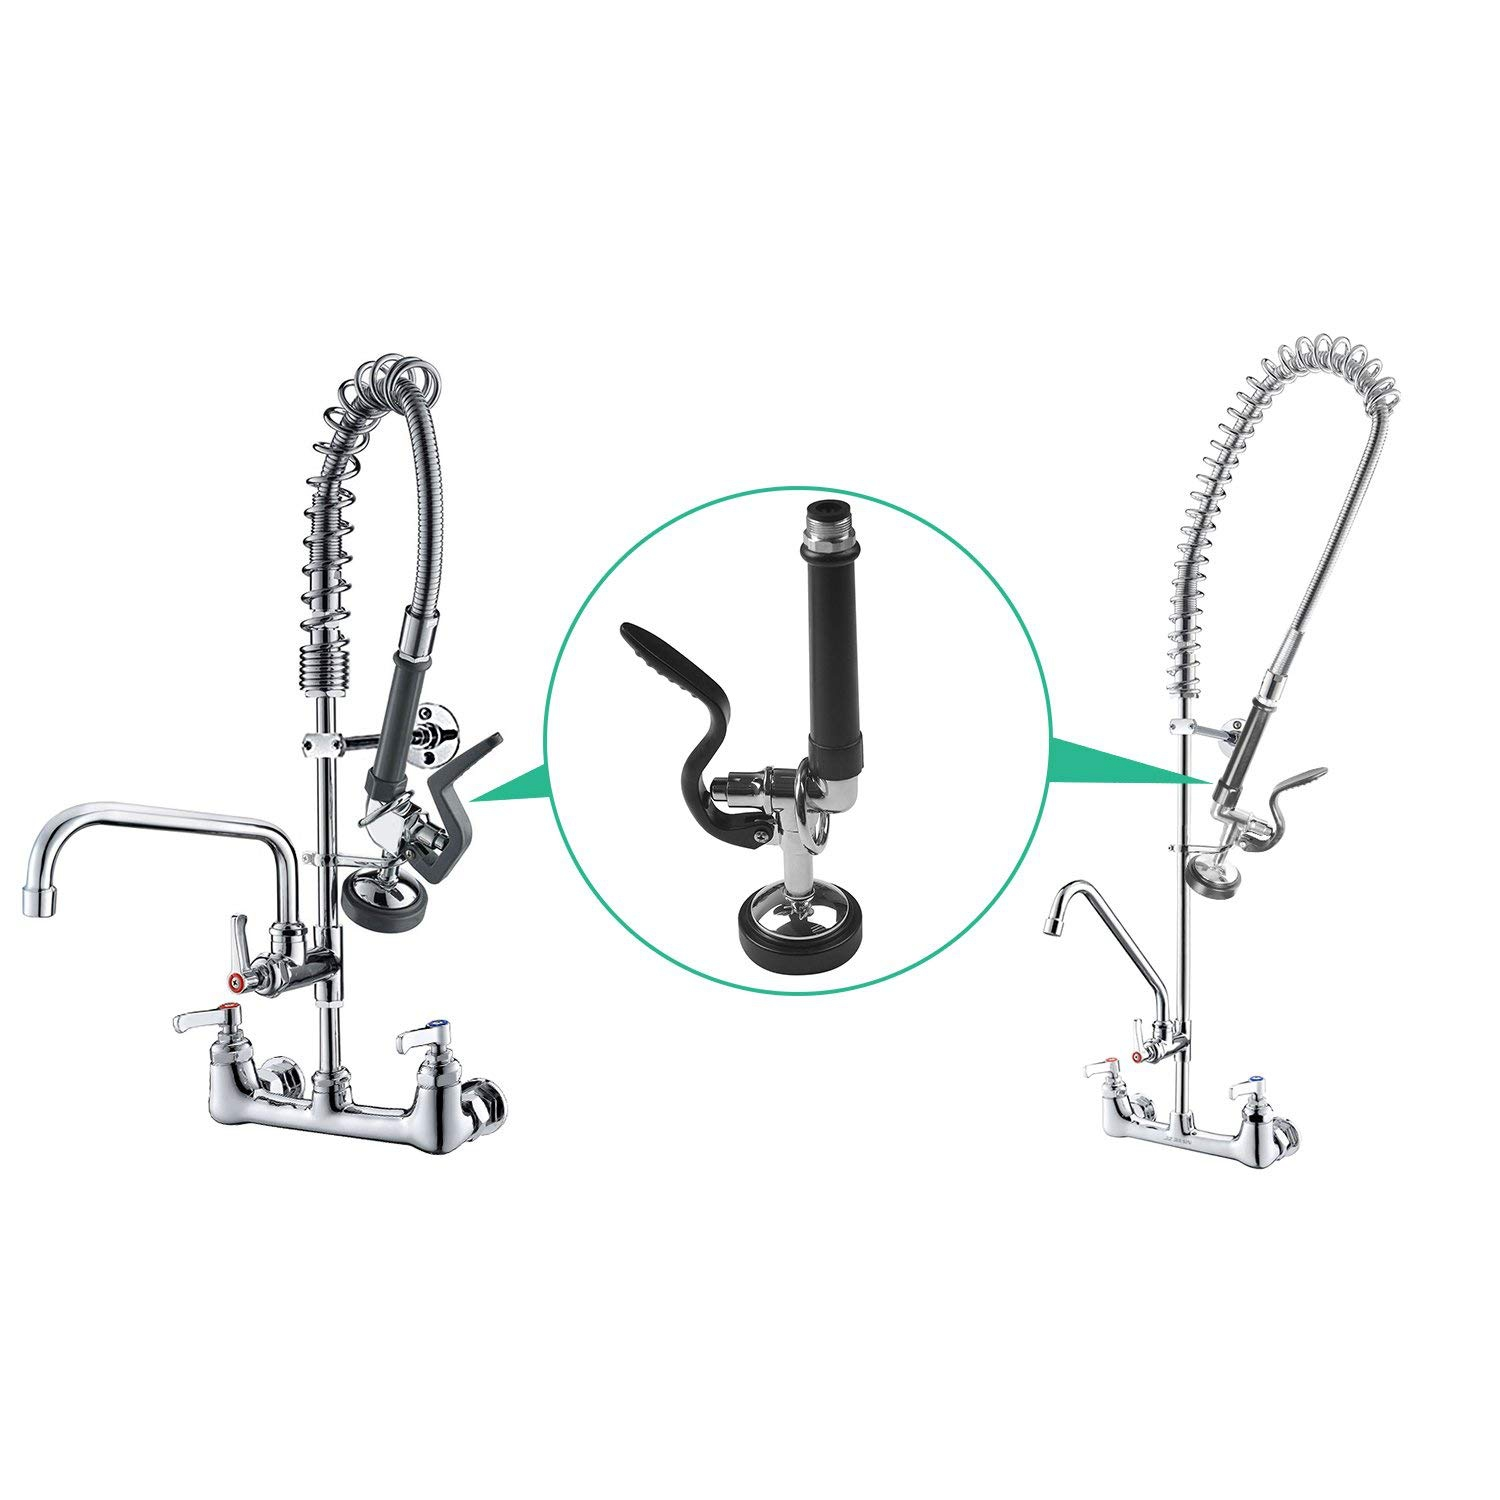 Pre Rinse Sprayer Commercial Kitchen Faucet Parts Chrome Finished (Black) With Steel Stainless Ring And Rubber RingPre Rinse Sprayer Commercial Kitchen Faucet Parts Chrome Finished (Black) With Steel Stainless Ring And Rubber Ring